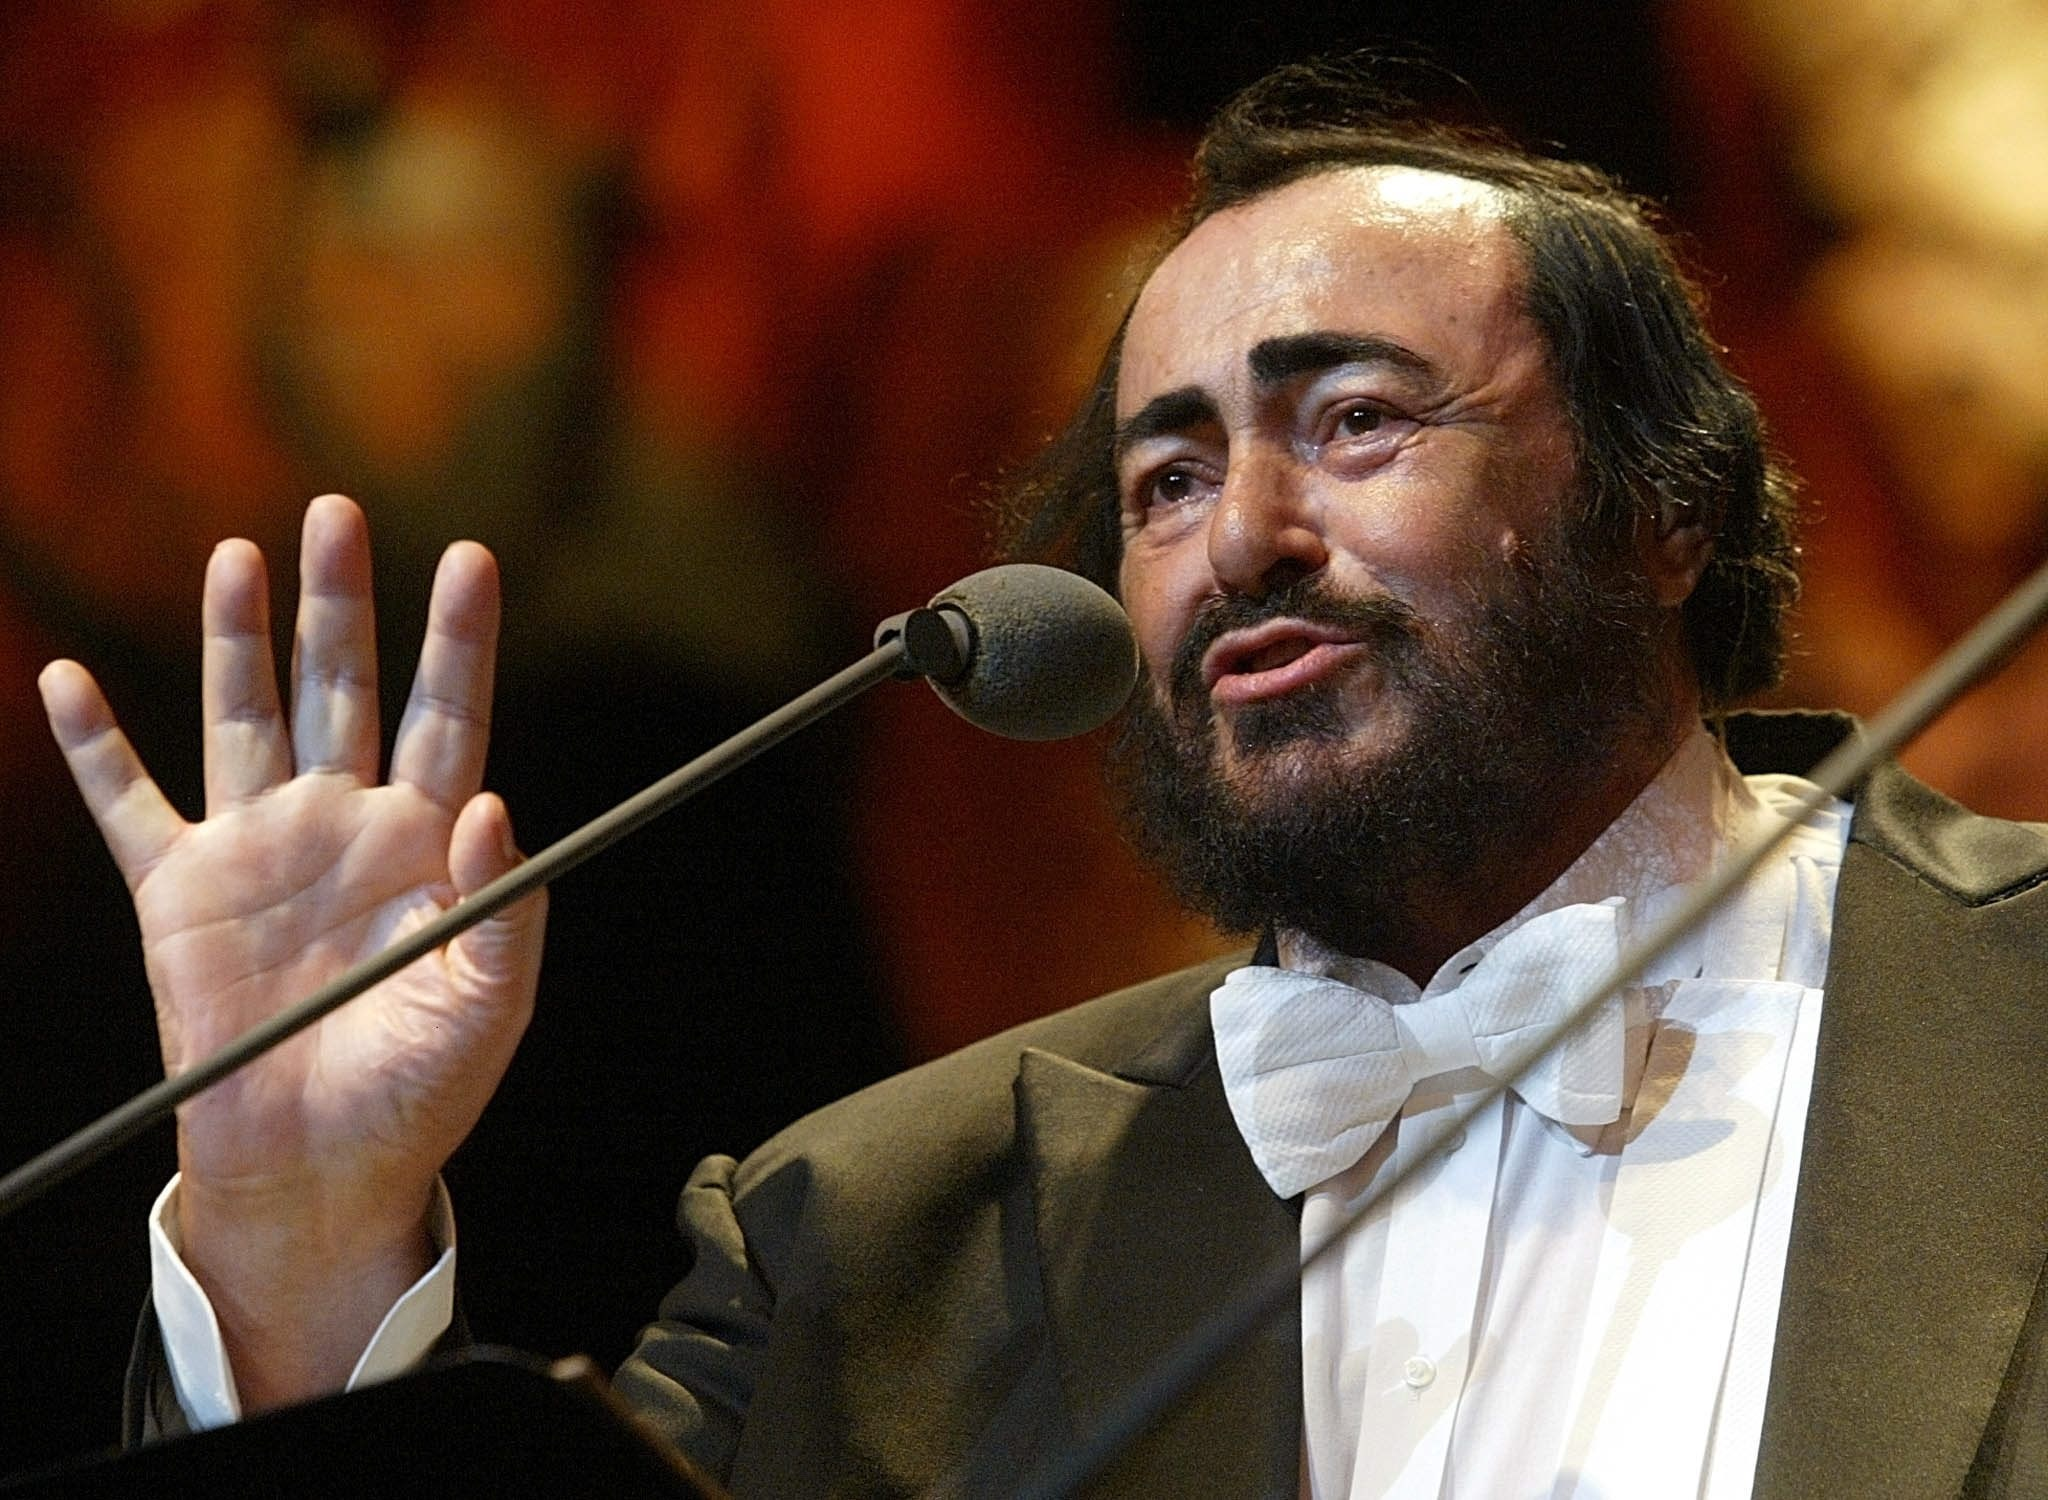 Luciano Pavarotti | Known people - famous people news and ...